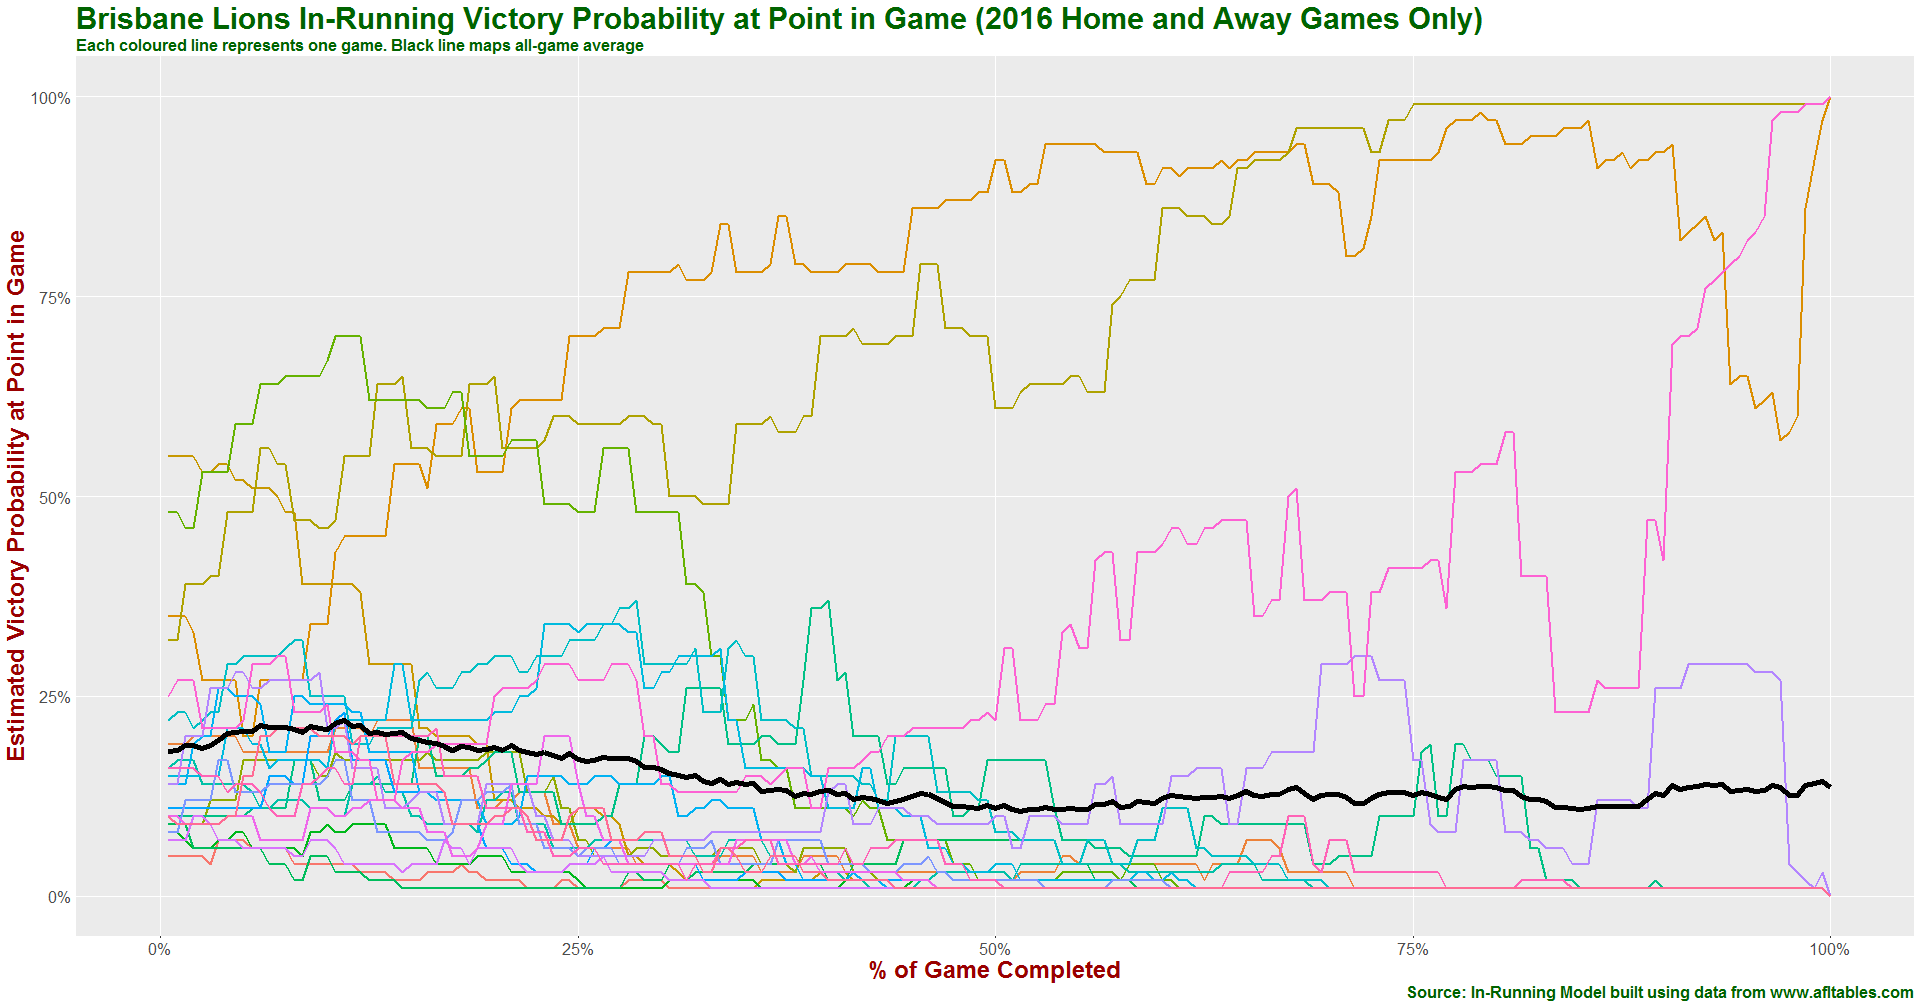 Brisbane Lions in-running prob history 2016.png